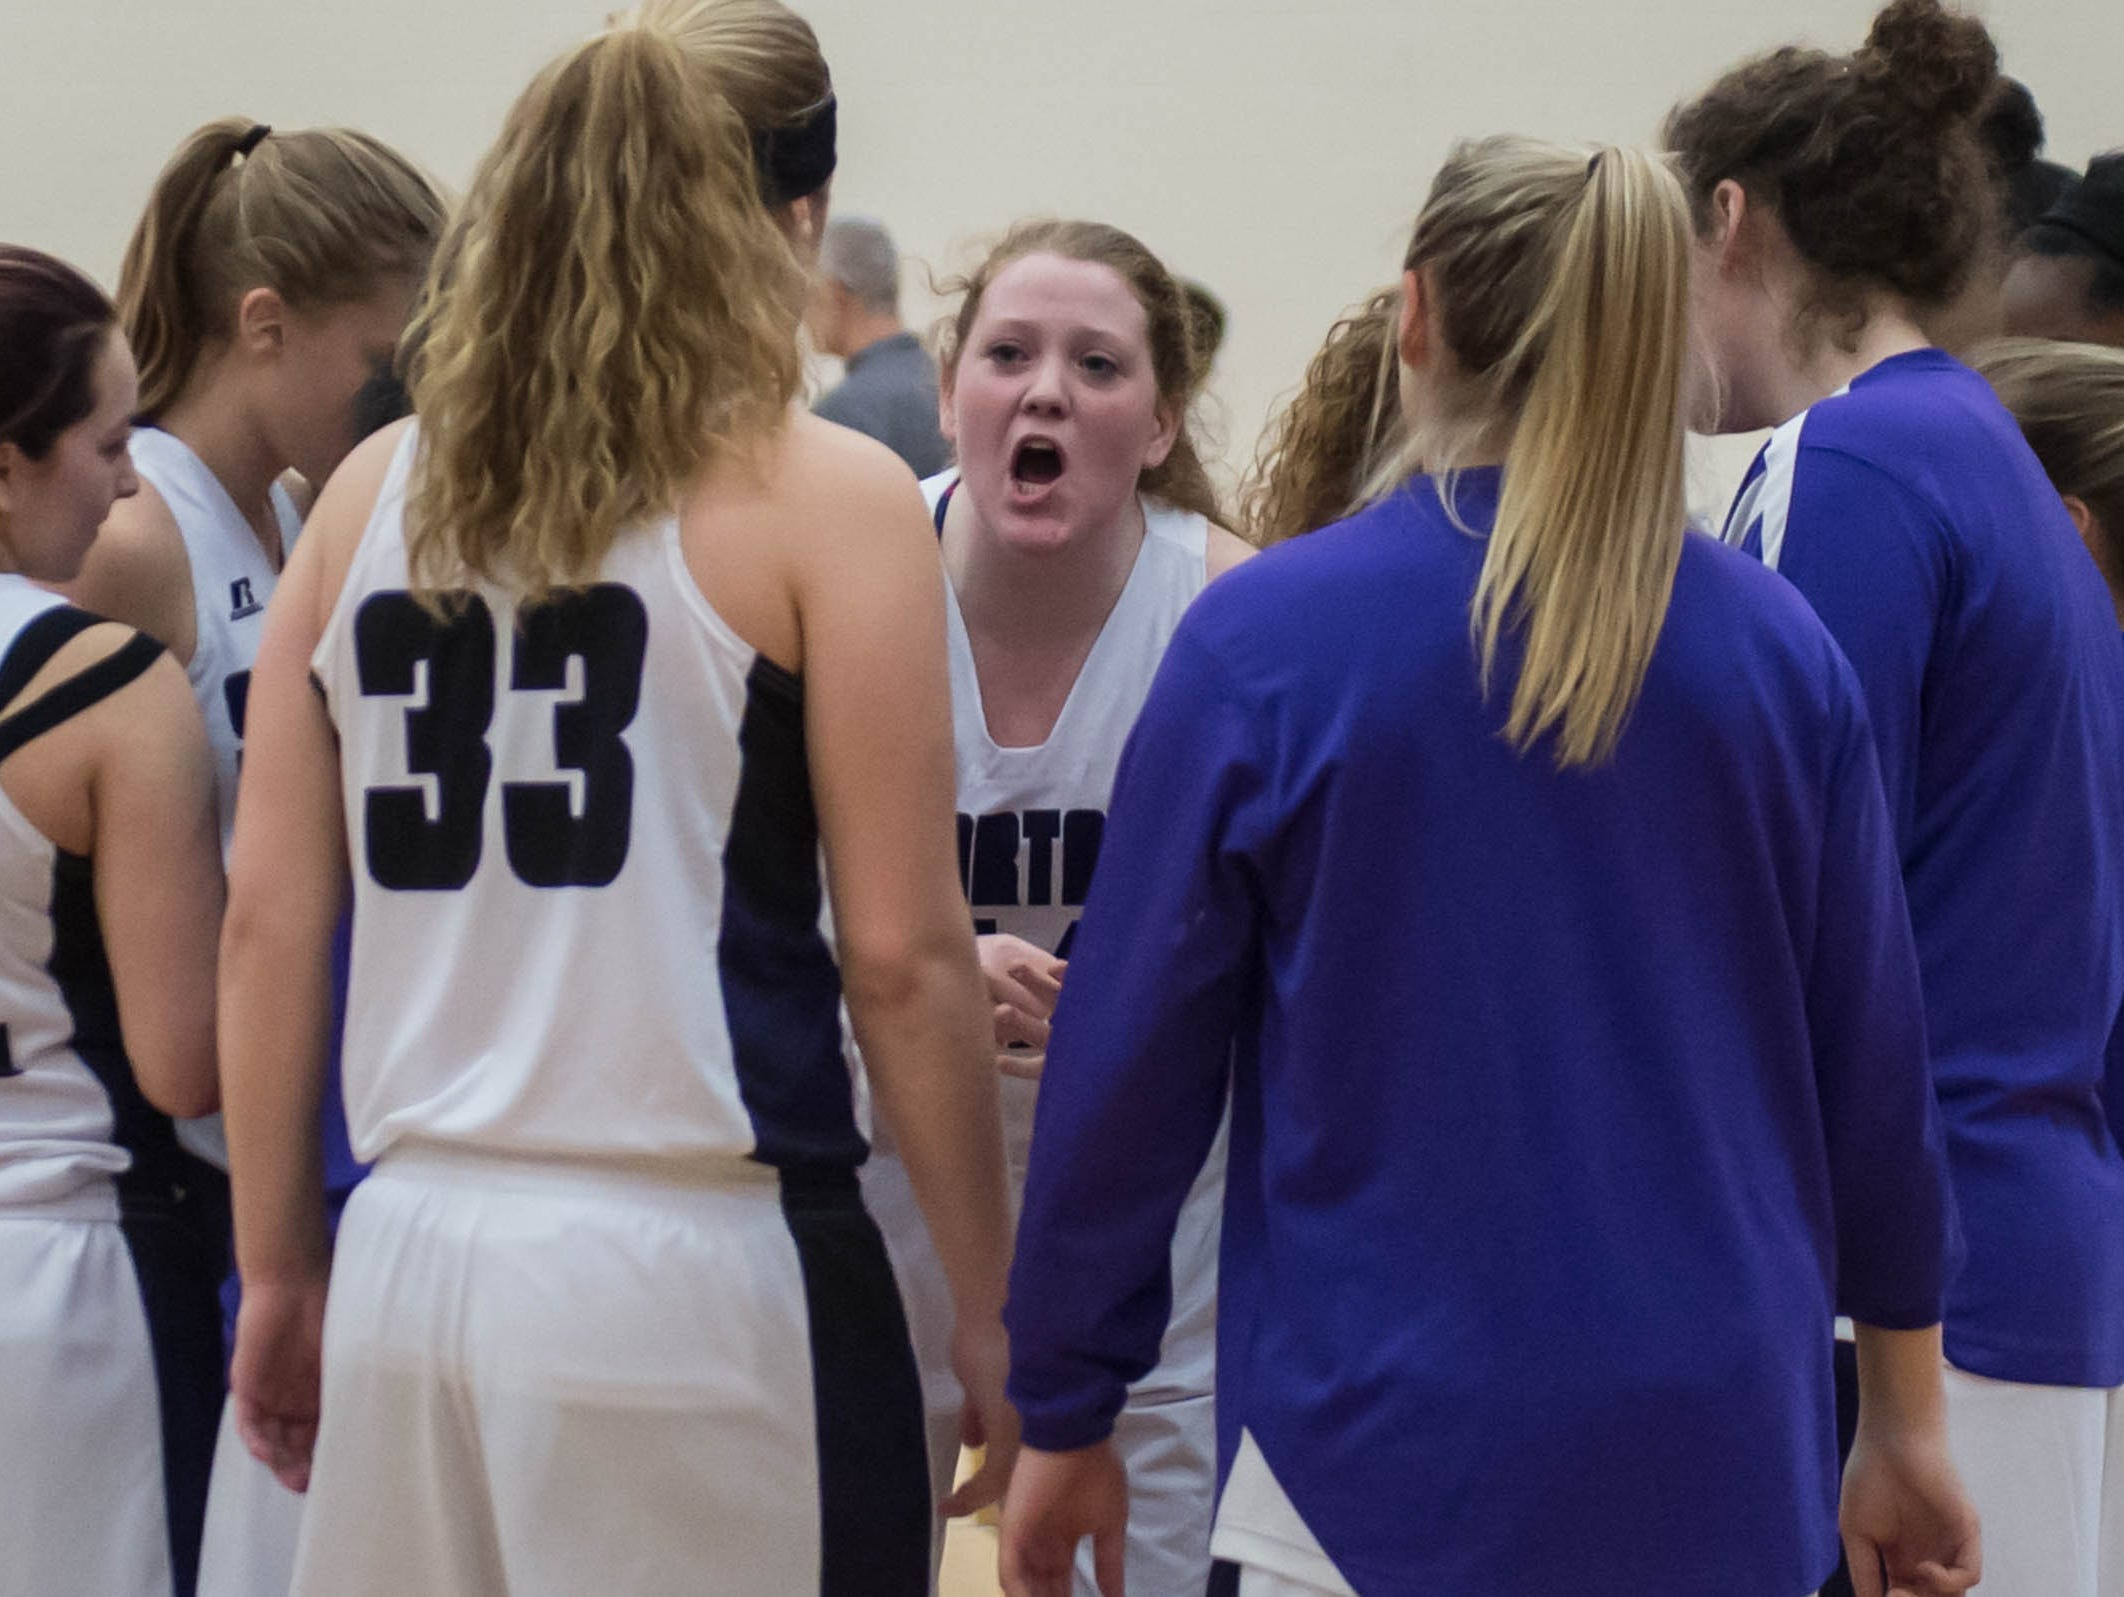 Lakeview's Emily Eldridge fires up here teammates before the game against Gull Lake.